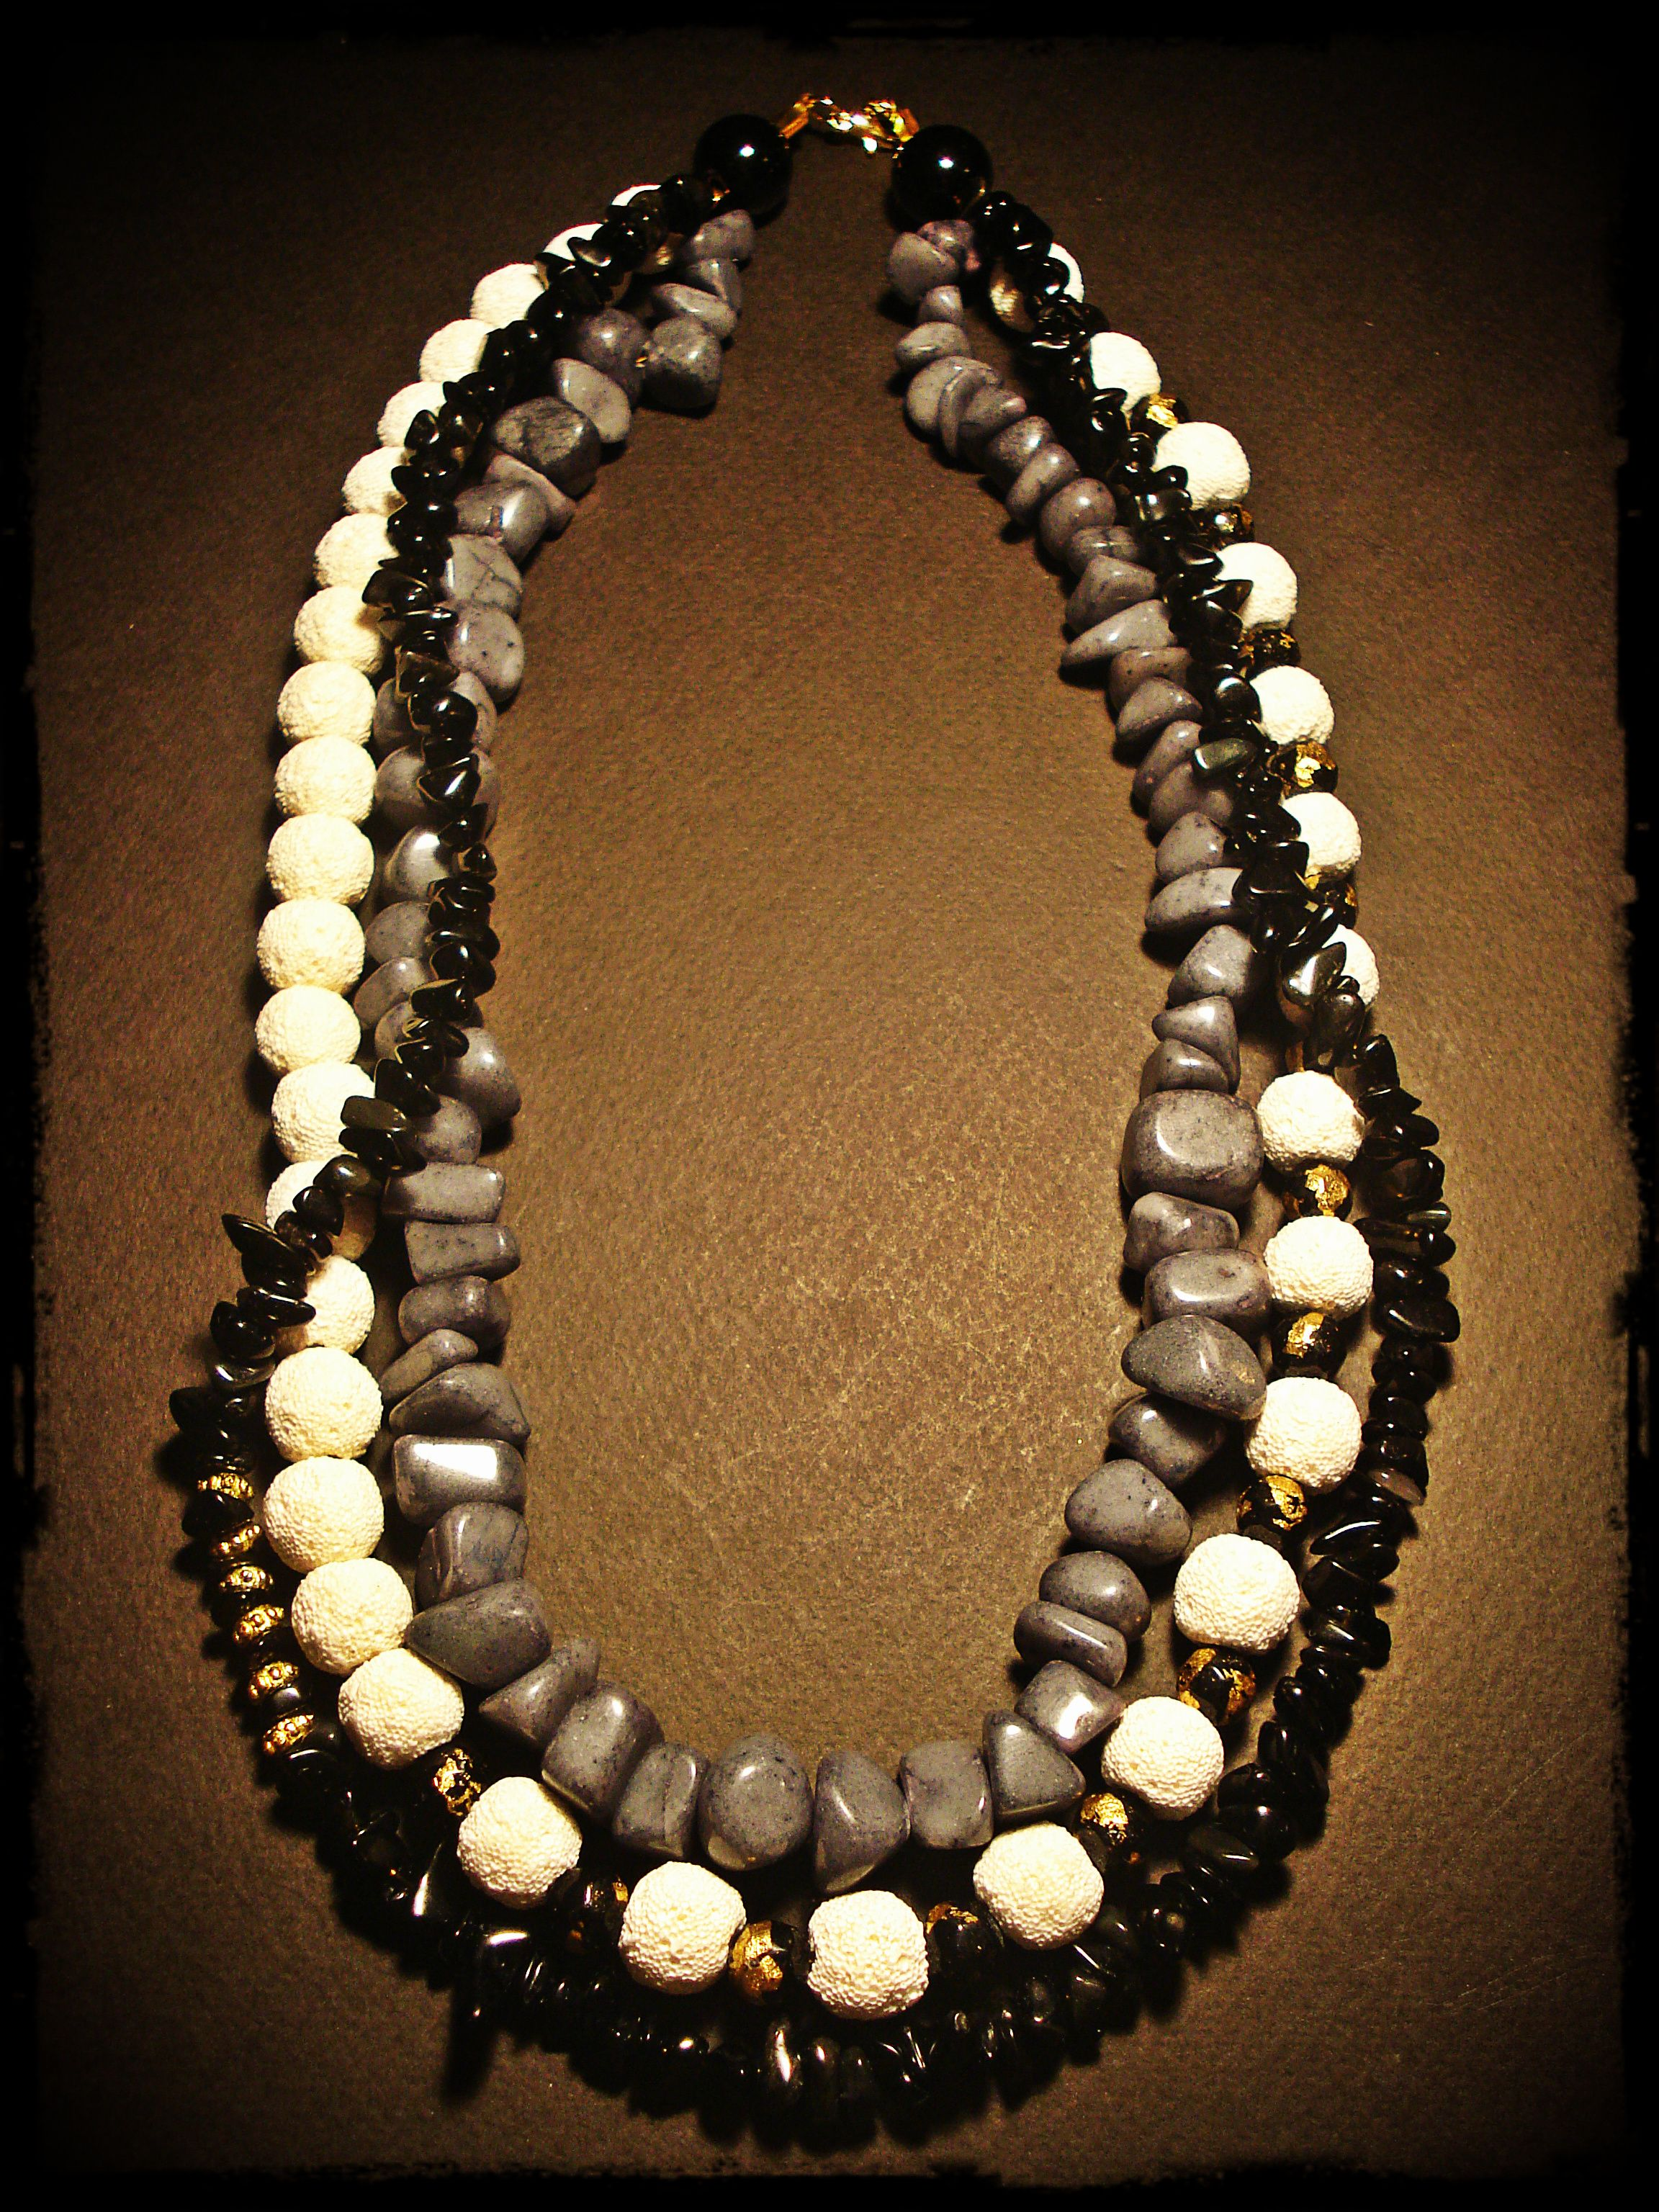 28$, handmade necklace made of grey jade stones, black glass chips and white lava beads